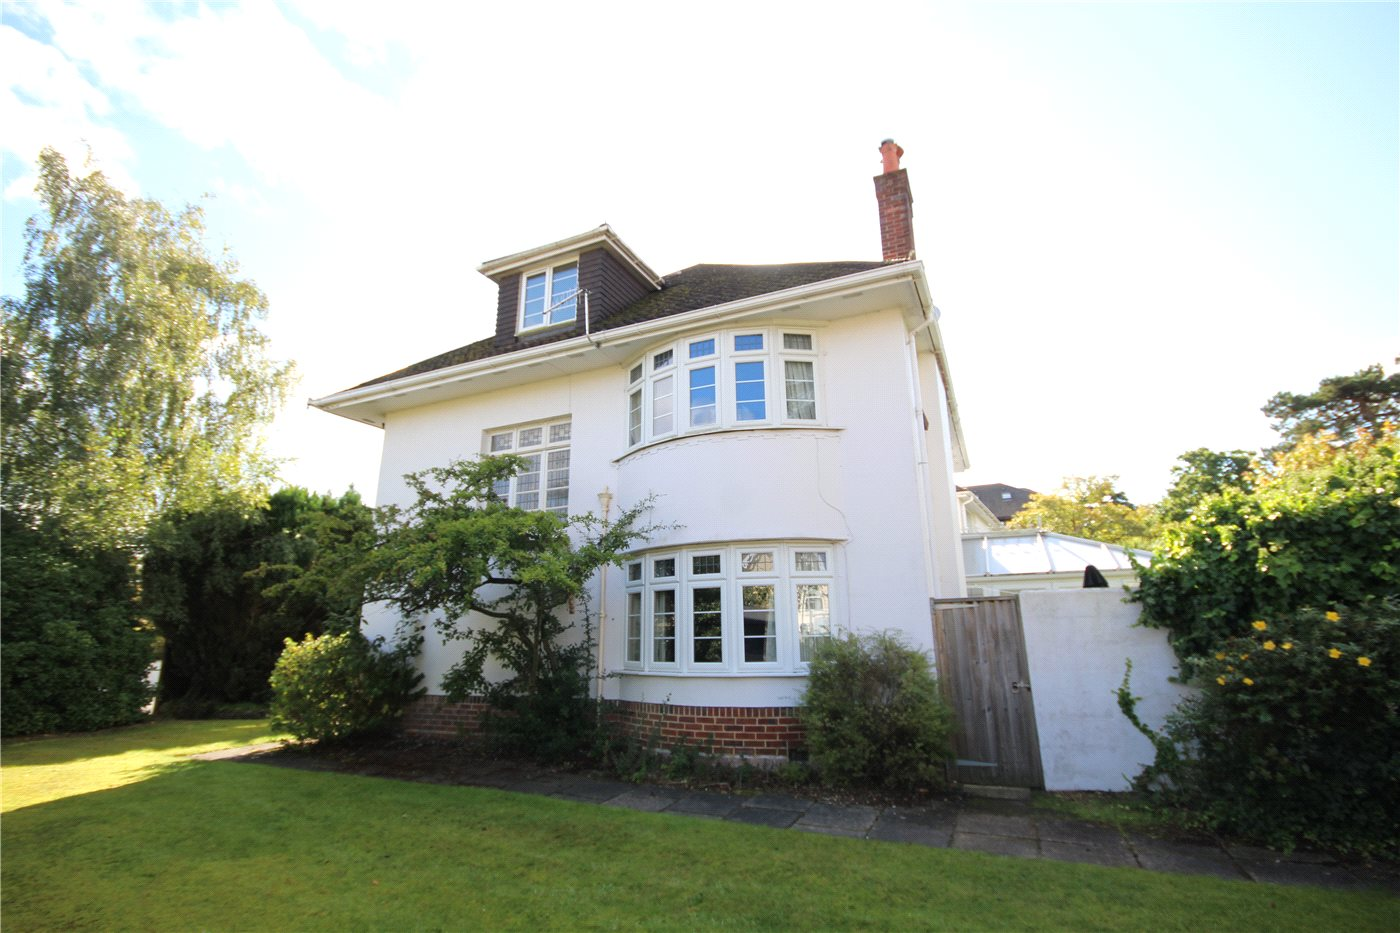 5 Bedrooms Detached House for sale in Sandecotes Road, Lower Parkstone, Poole, Dorset, BH14